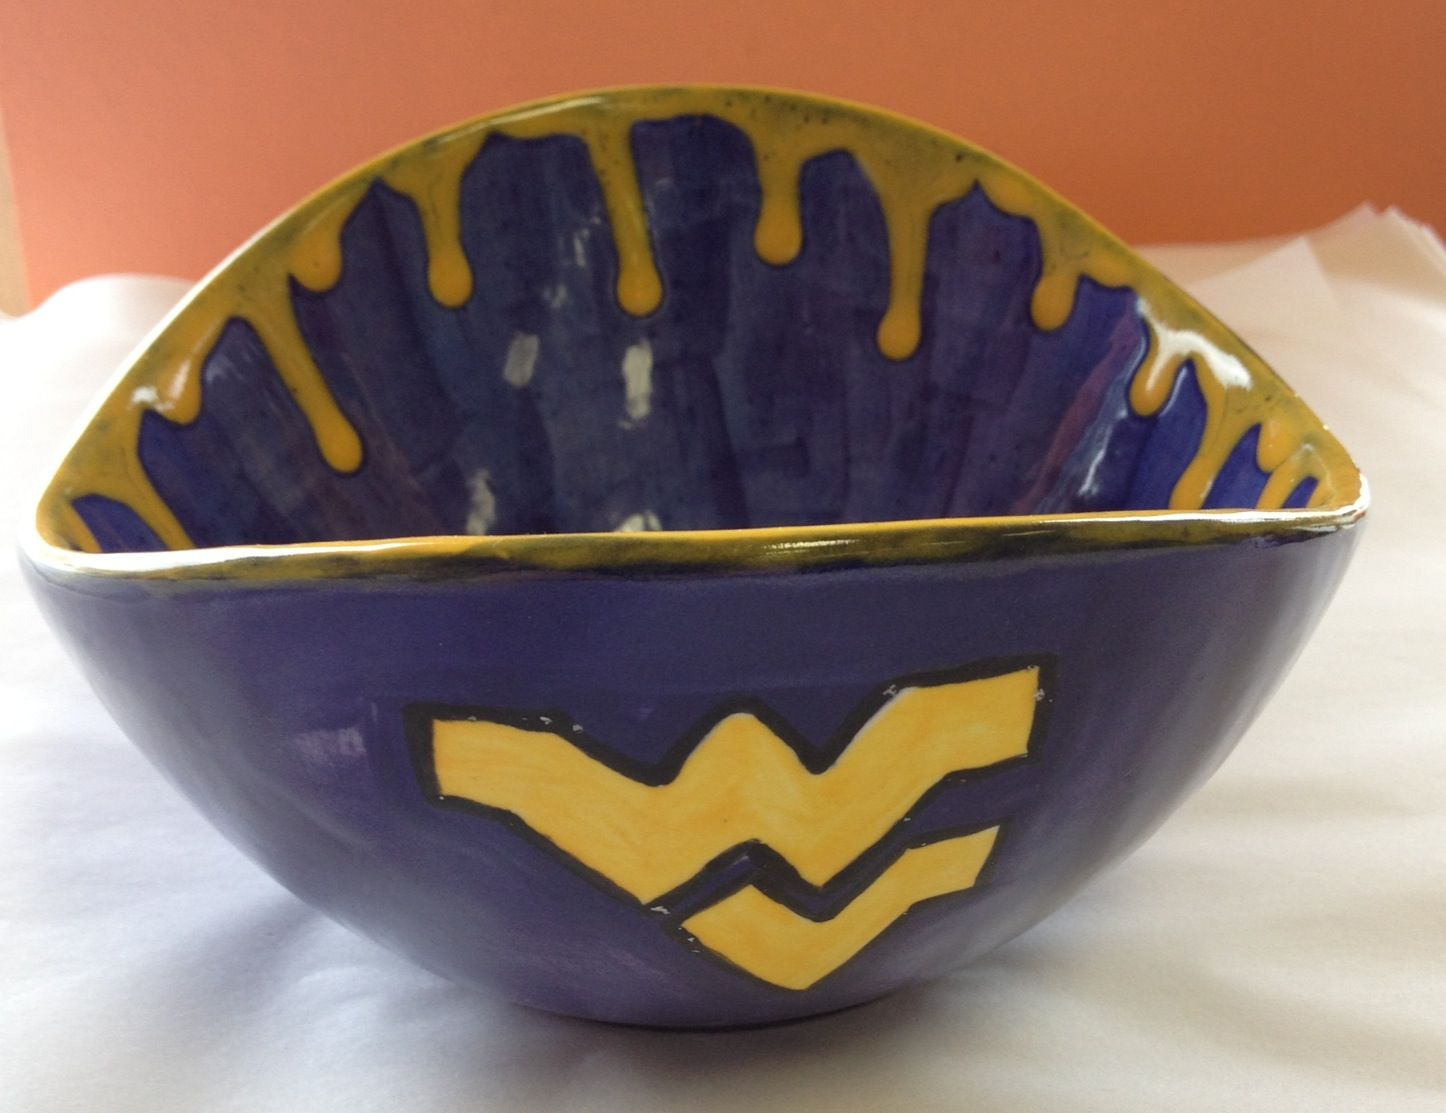 Wvu bowl paint your own pottery ideas pinterest for Bowl painting ideas